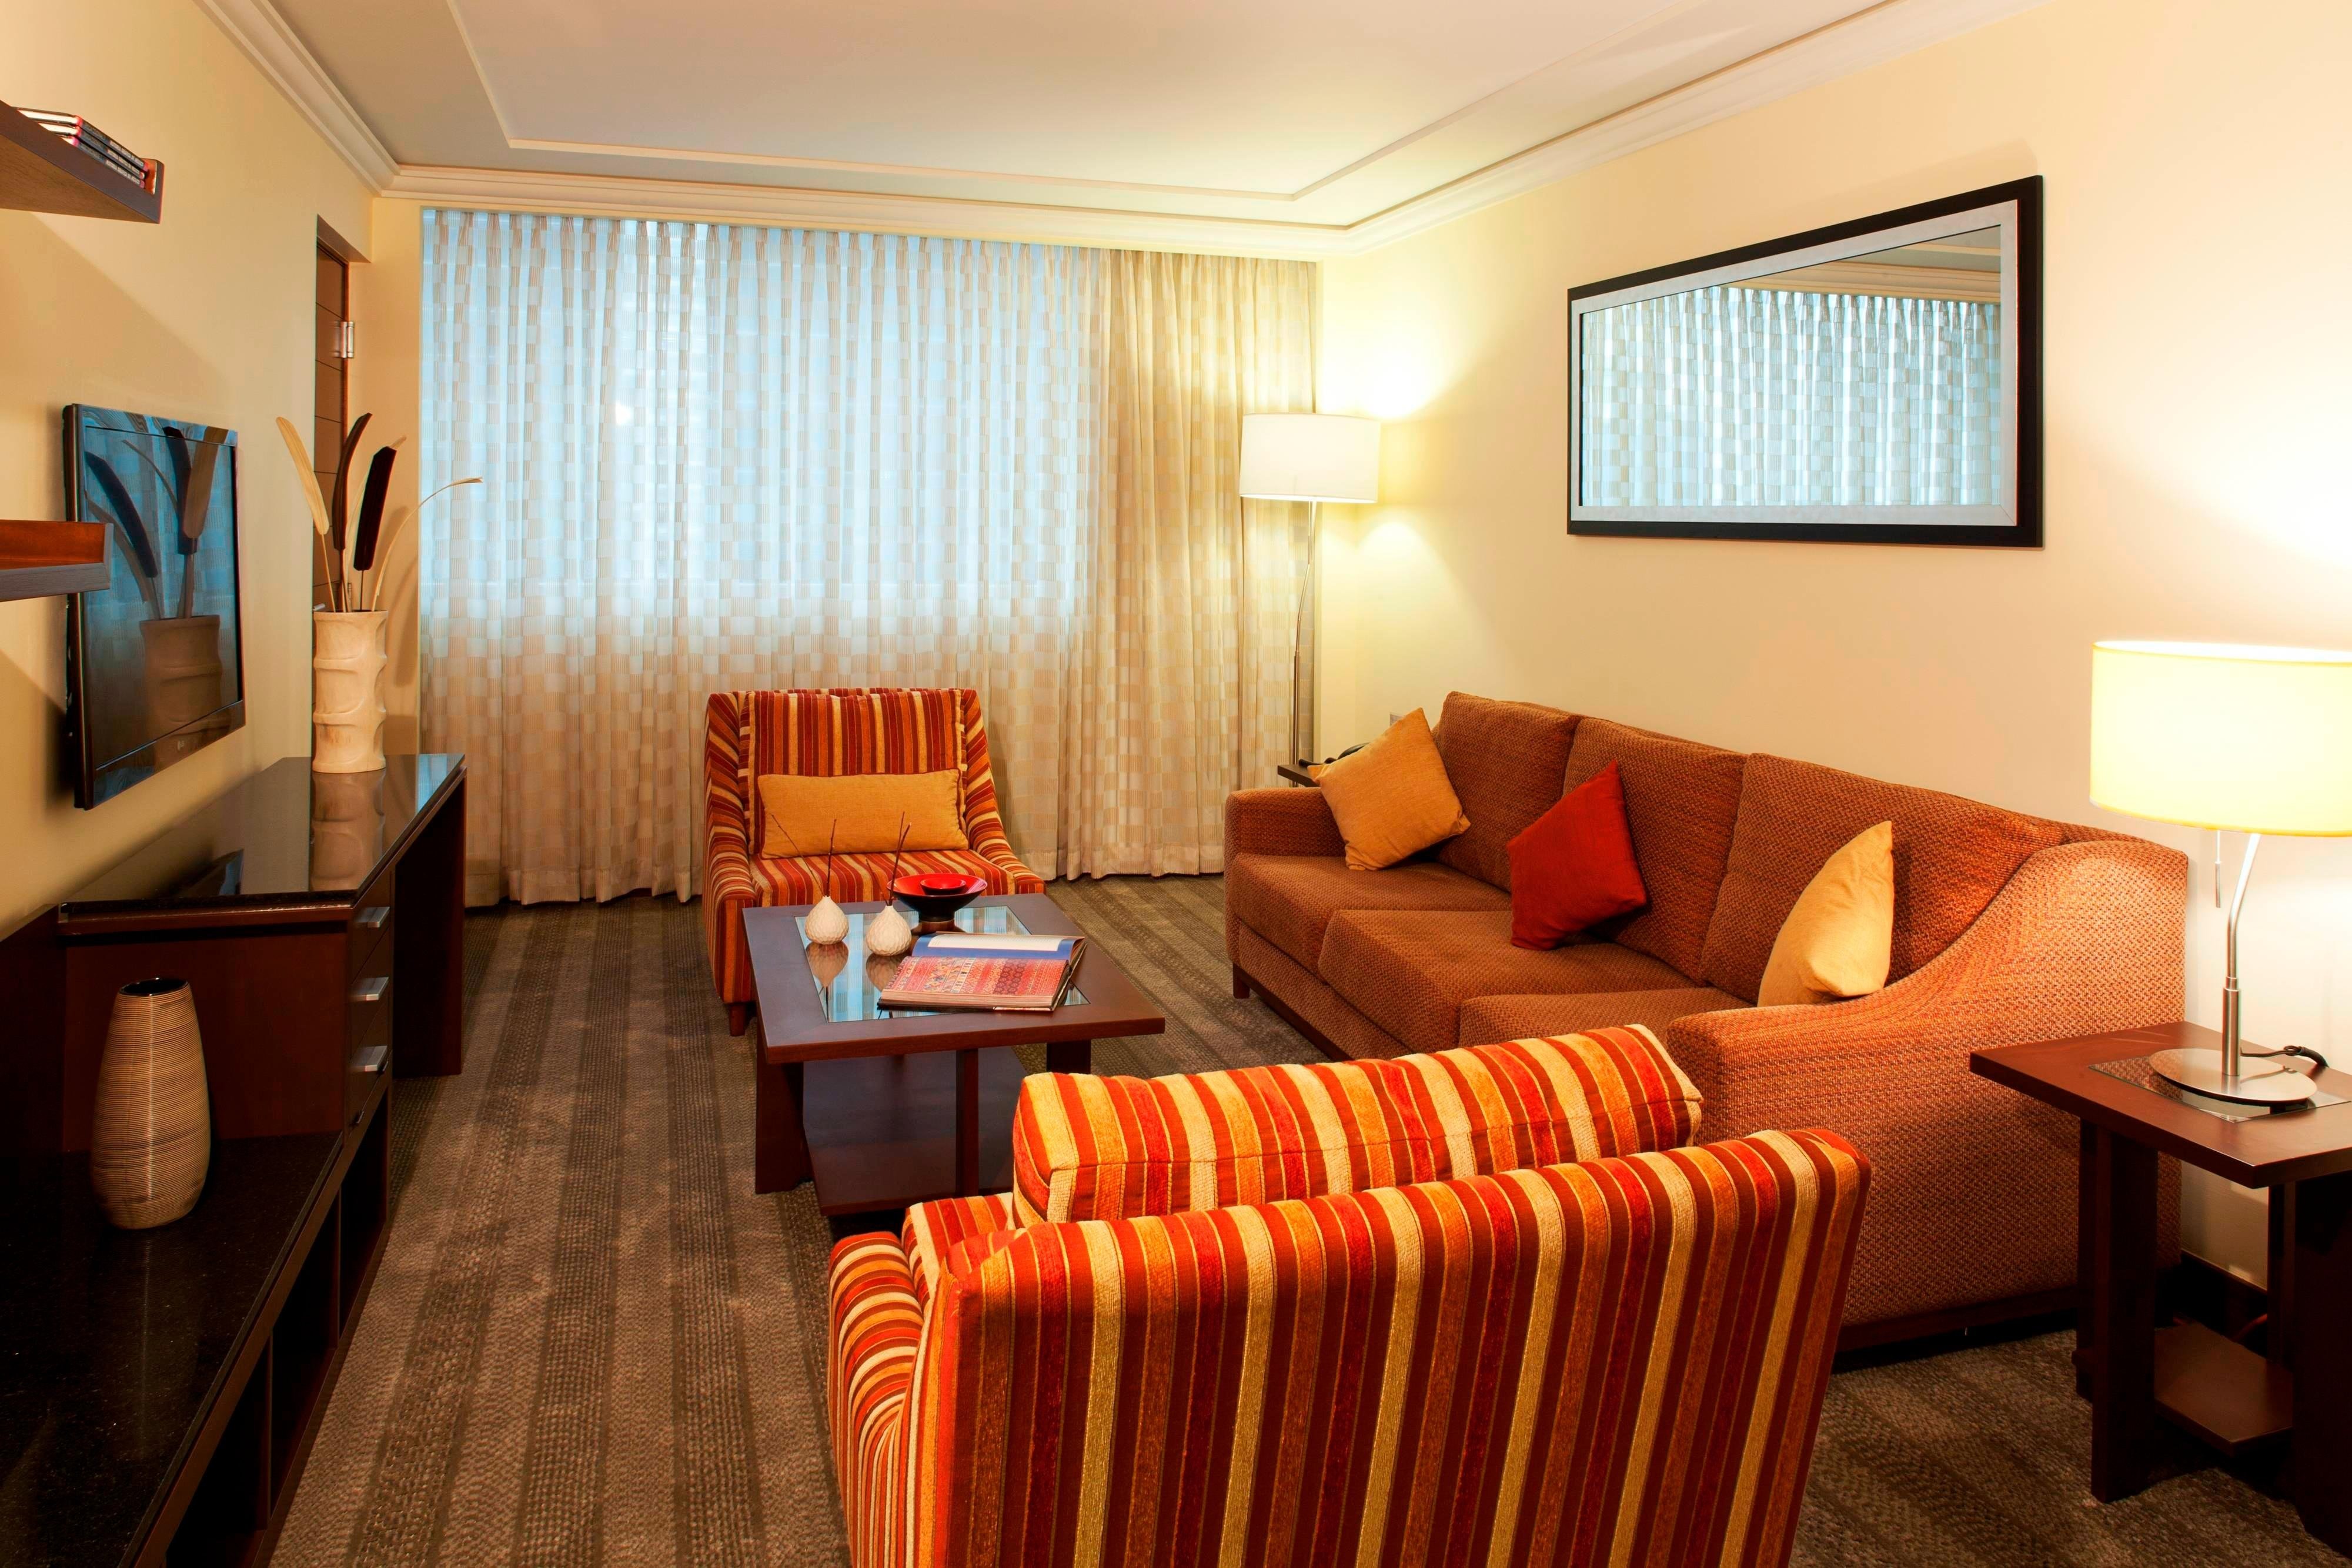 Junior Suite del hotel Marriott Reforma